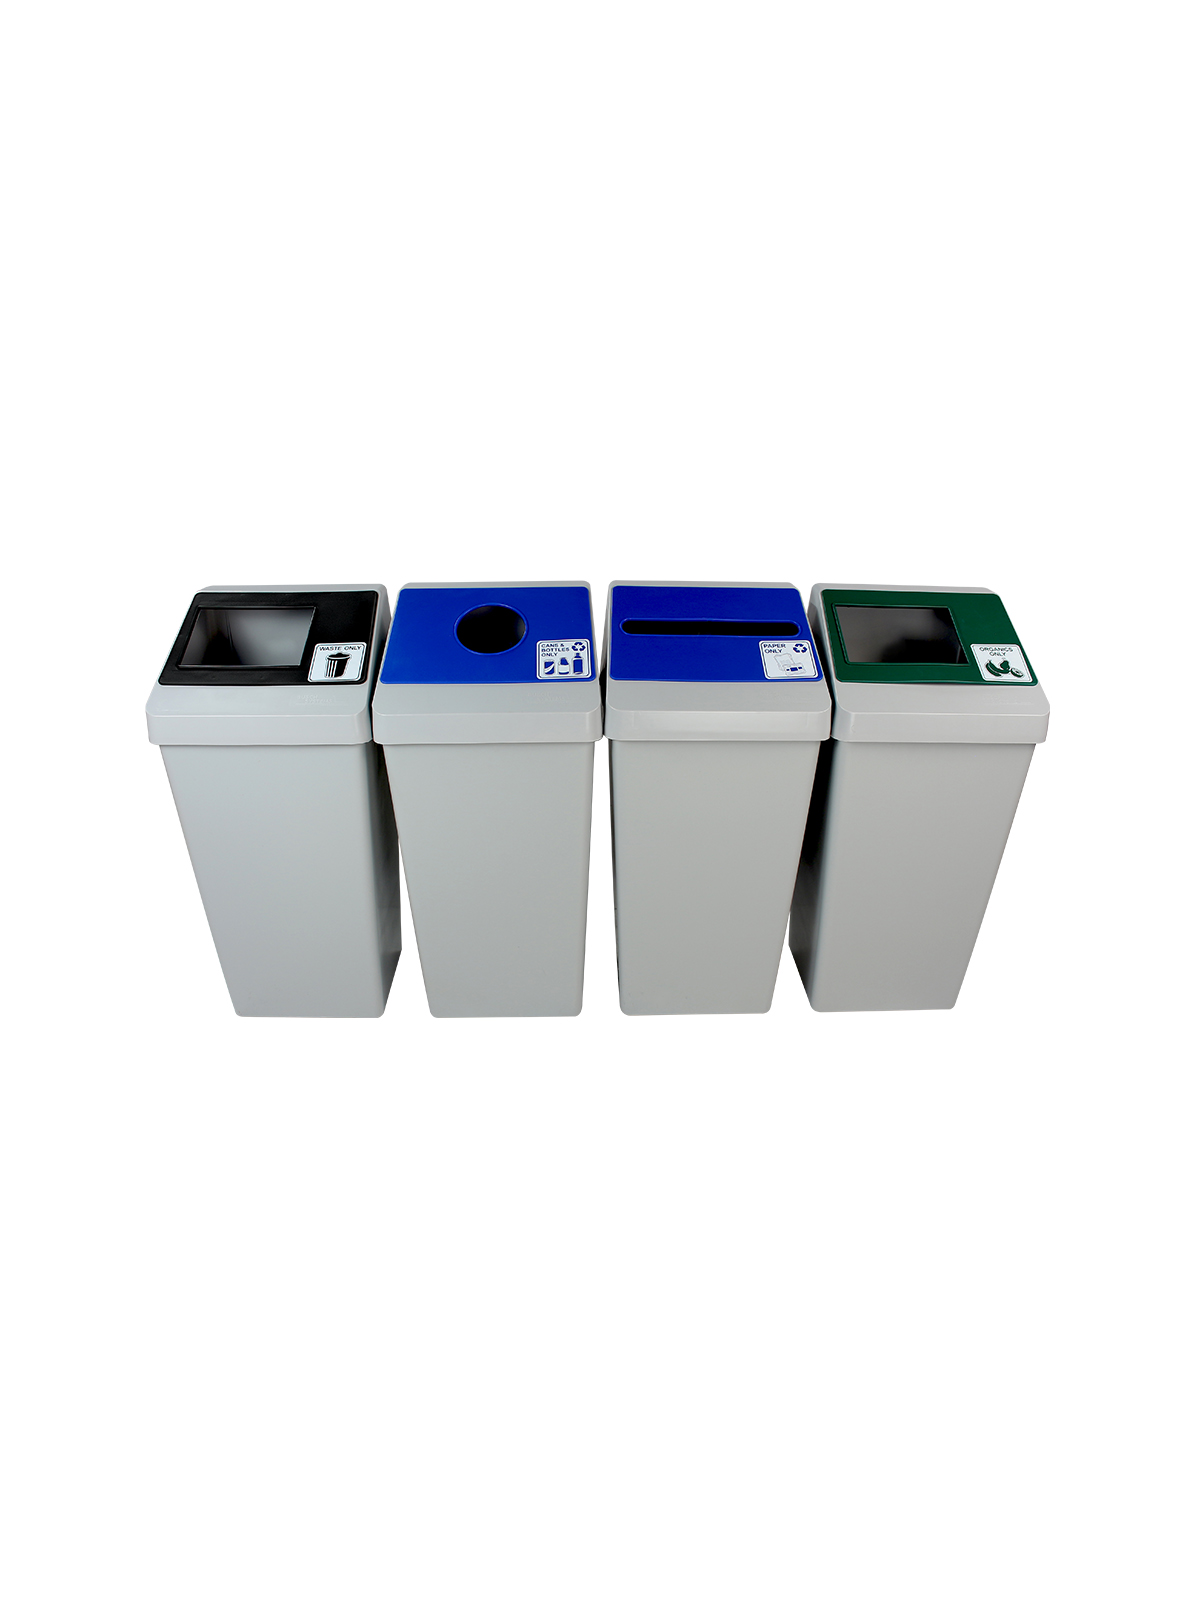 SMART SORT - Quad - Cans & Bottles-Paper-Organics-Waste - Circle-Slot-Full - Grey-Blue-Blue-Green-Black